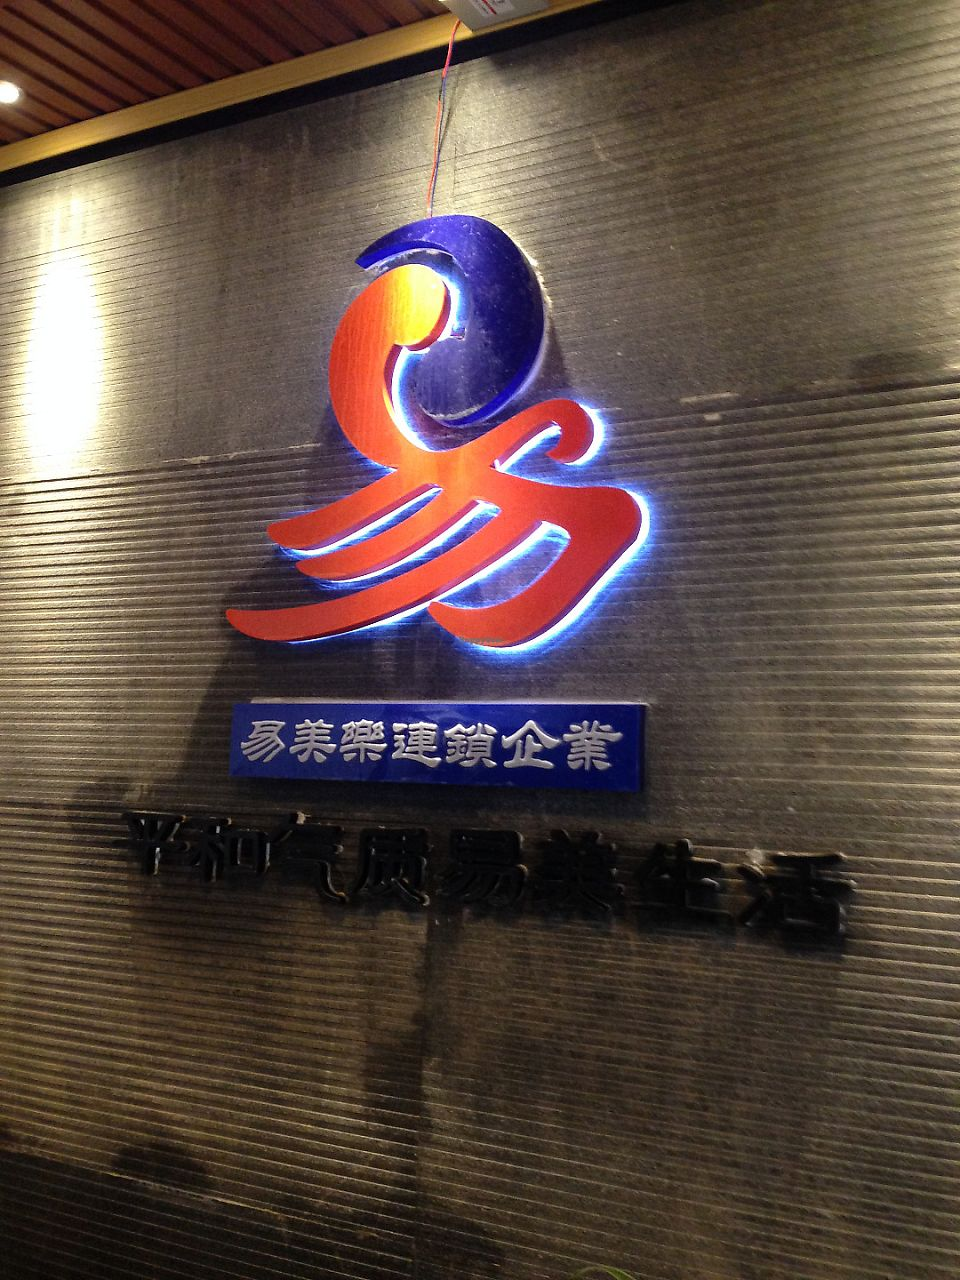 """Photo of Yi Mei Le Vegetarian Restaurant - maybe closed  by <a href=""""/members/profile/Stevie"""">Stevie</a> <br/>Shop sign <br/> July 1, 2016  - <a href='/contact/abuse/image/75818/368199'>Report</a>"""